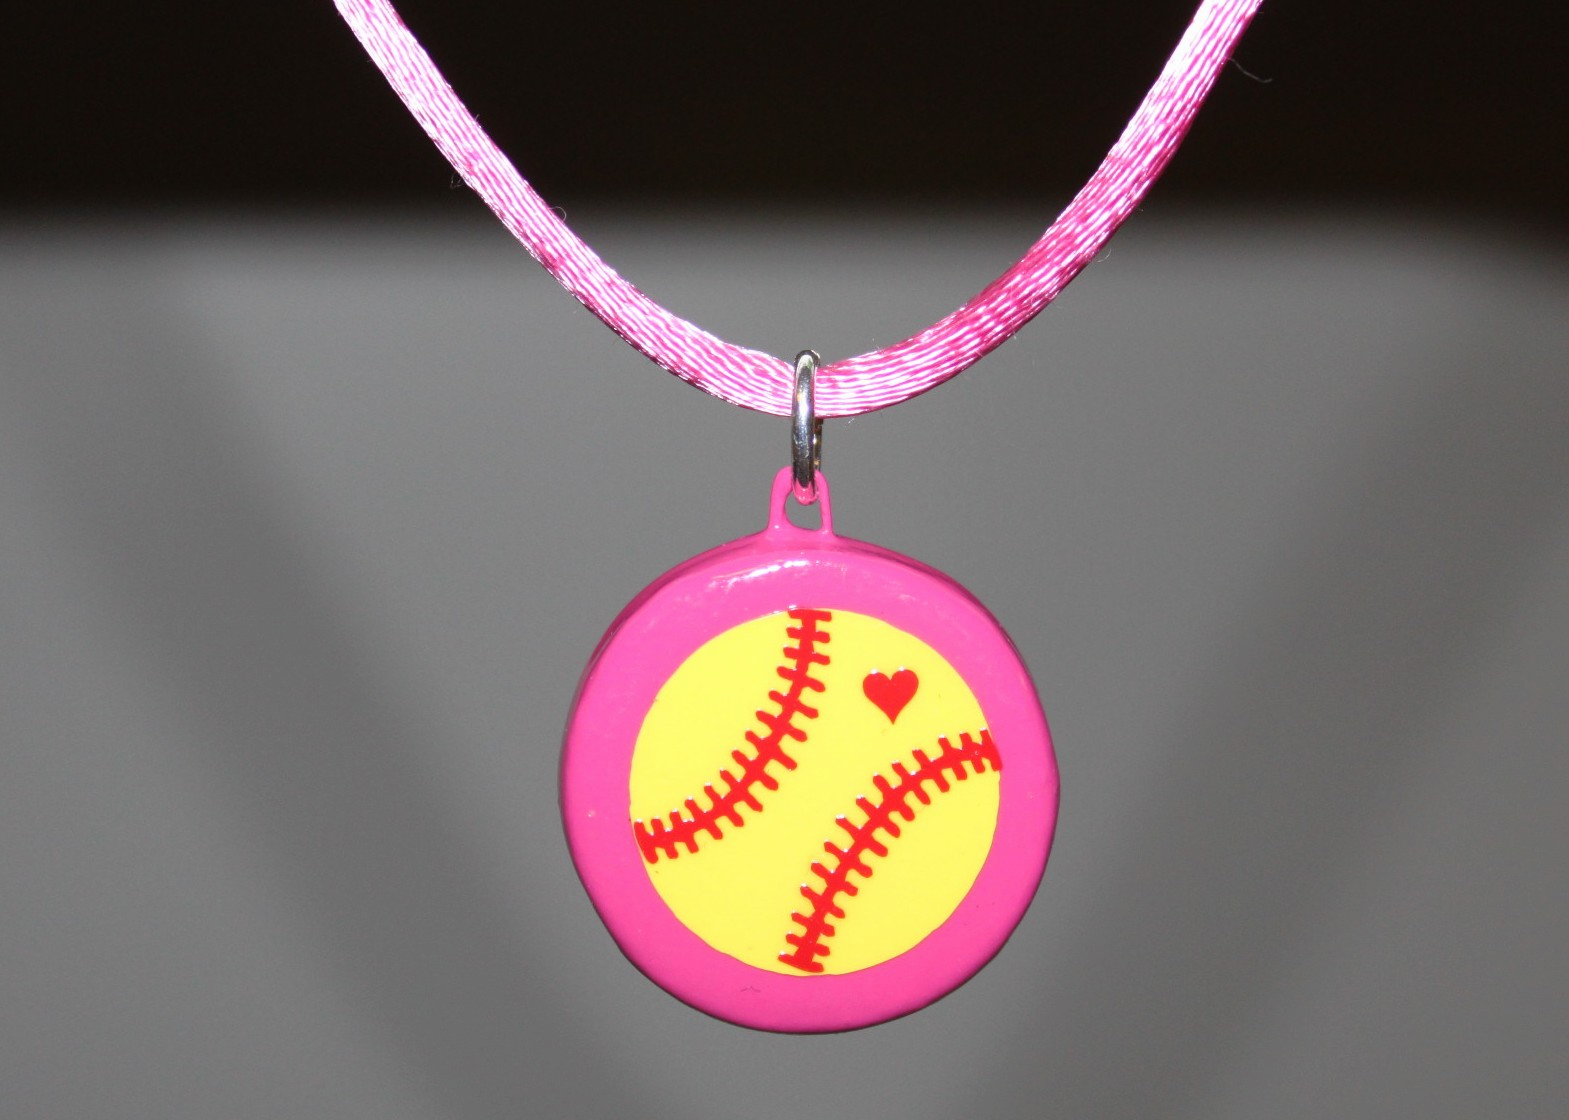 player fan gift skyrim softball i shopping women love pendant heart jewelry baseball little necklace products league